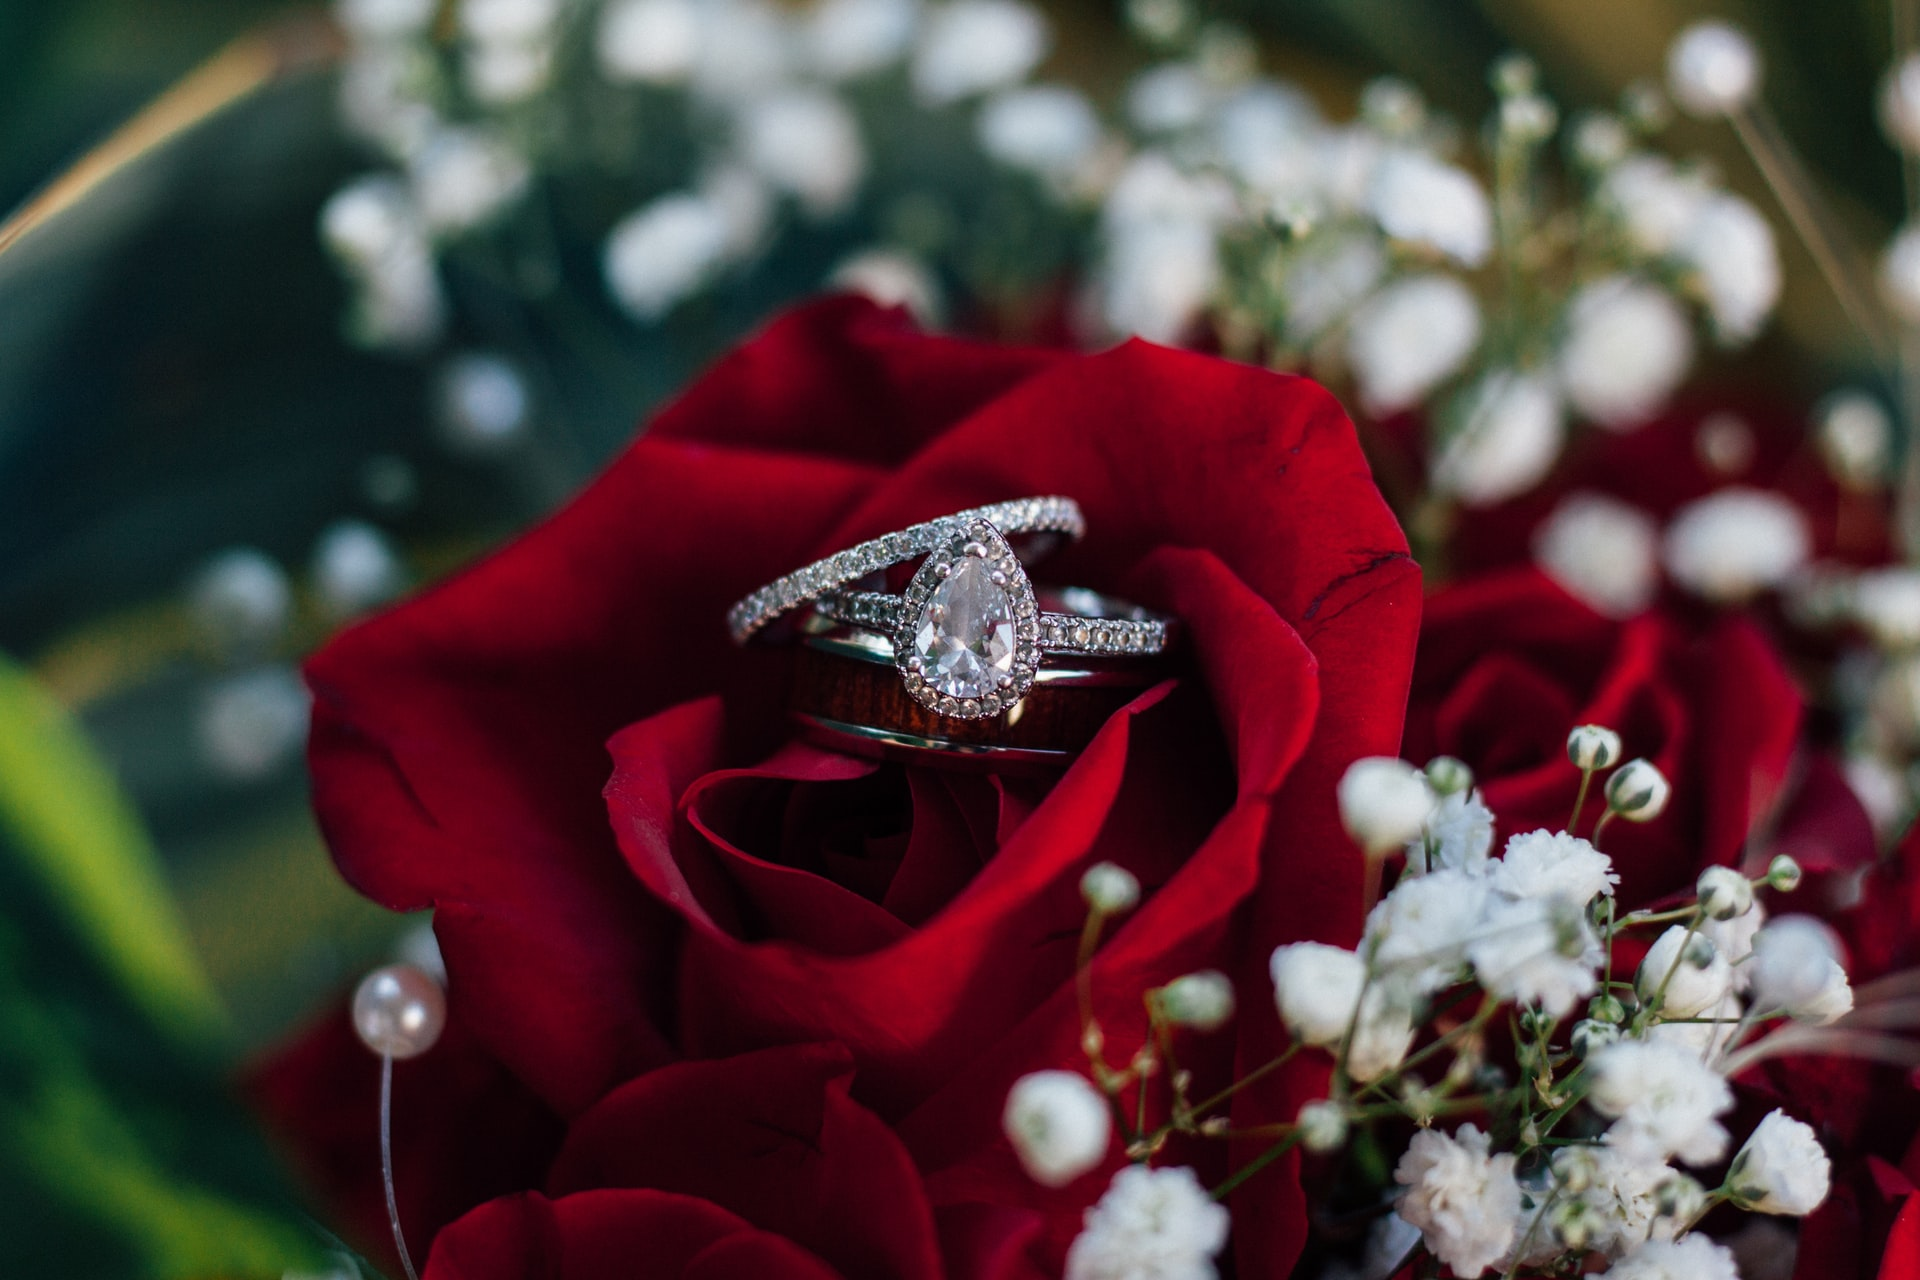 Two engagement rings in a red rose